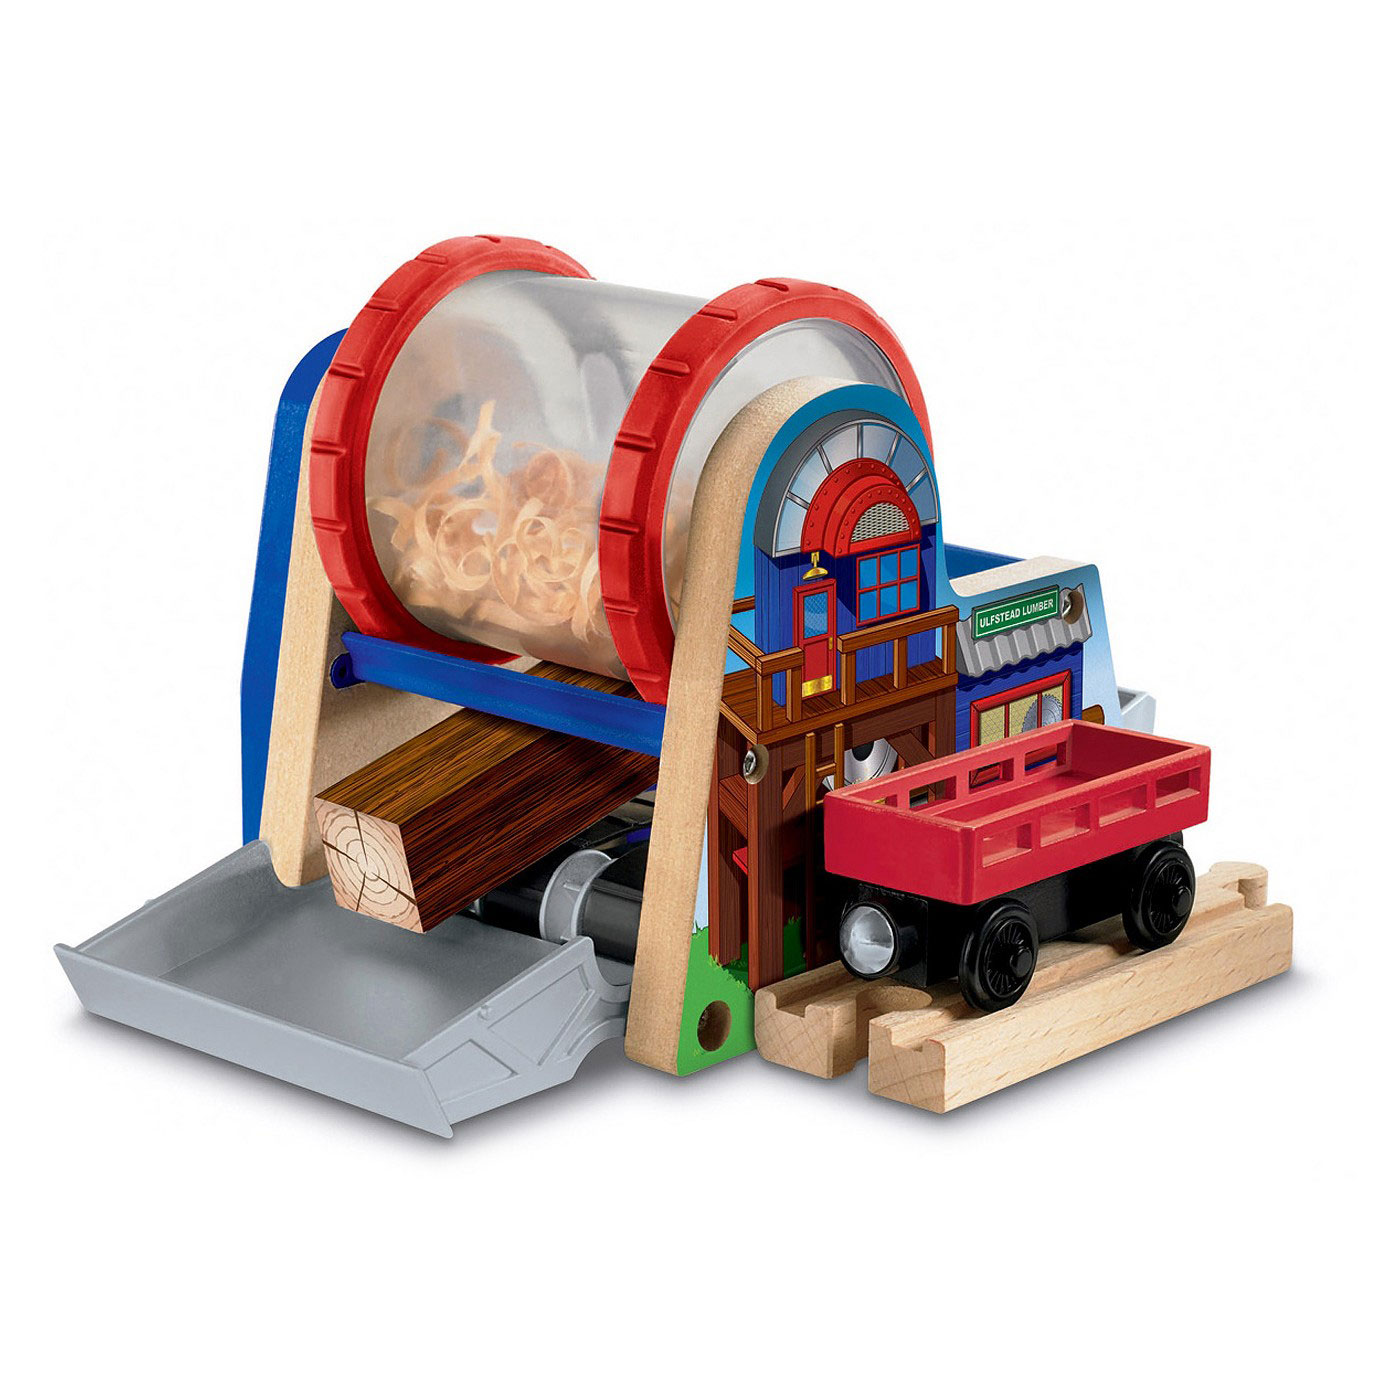 Fisher Price Thomas and Friends Wooden Train Railway Chopped Log Wood Chipper